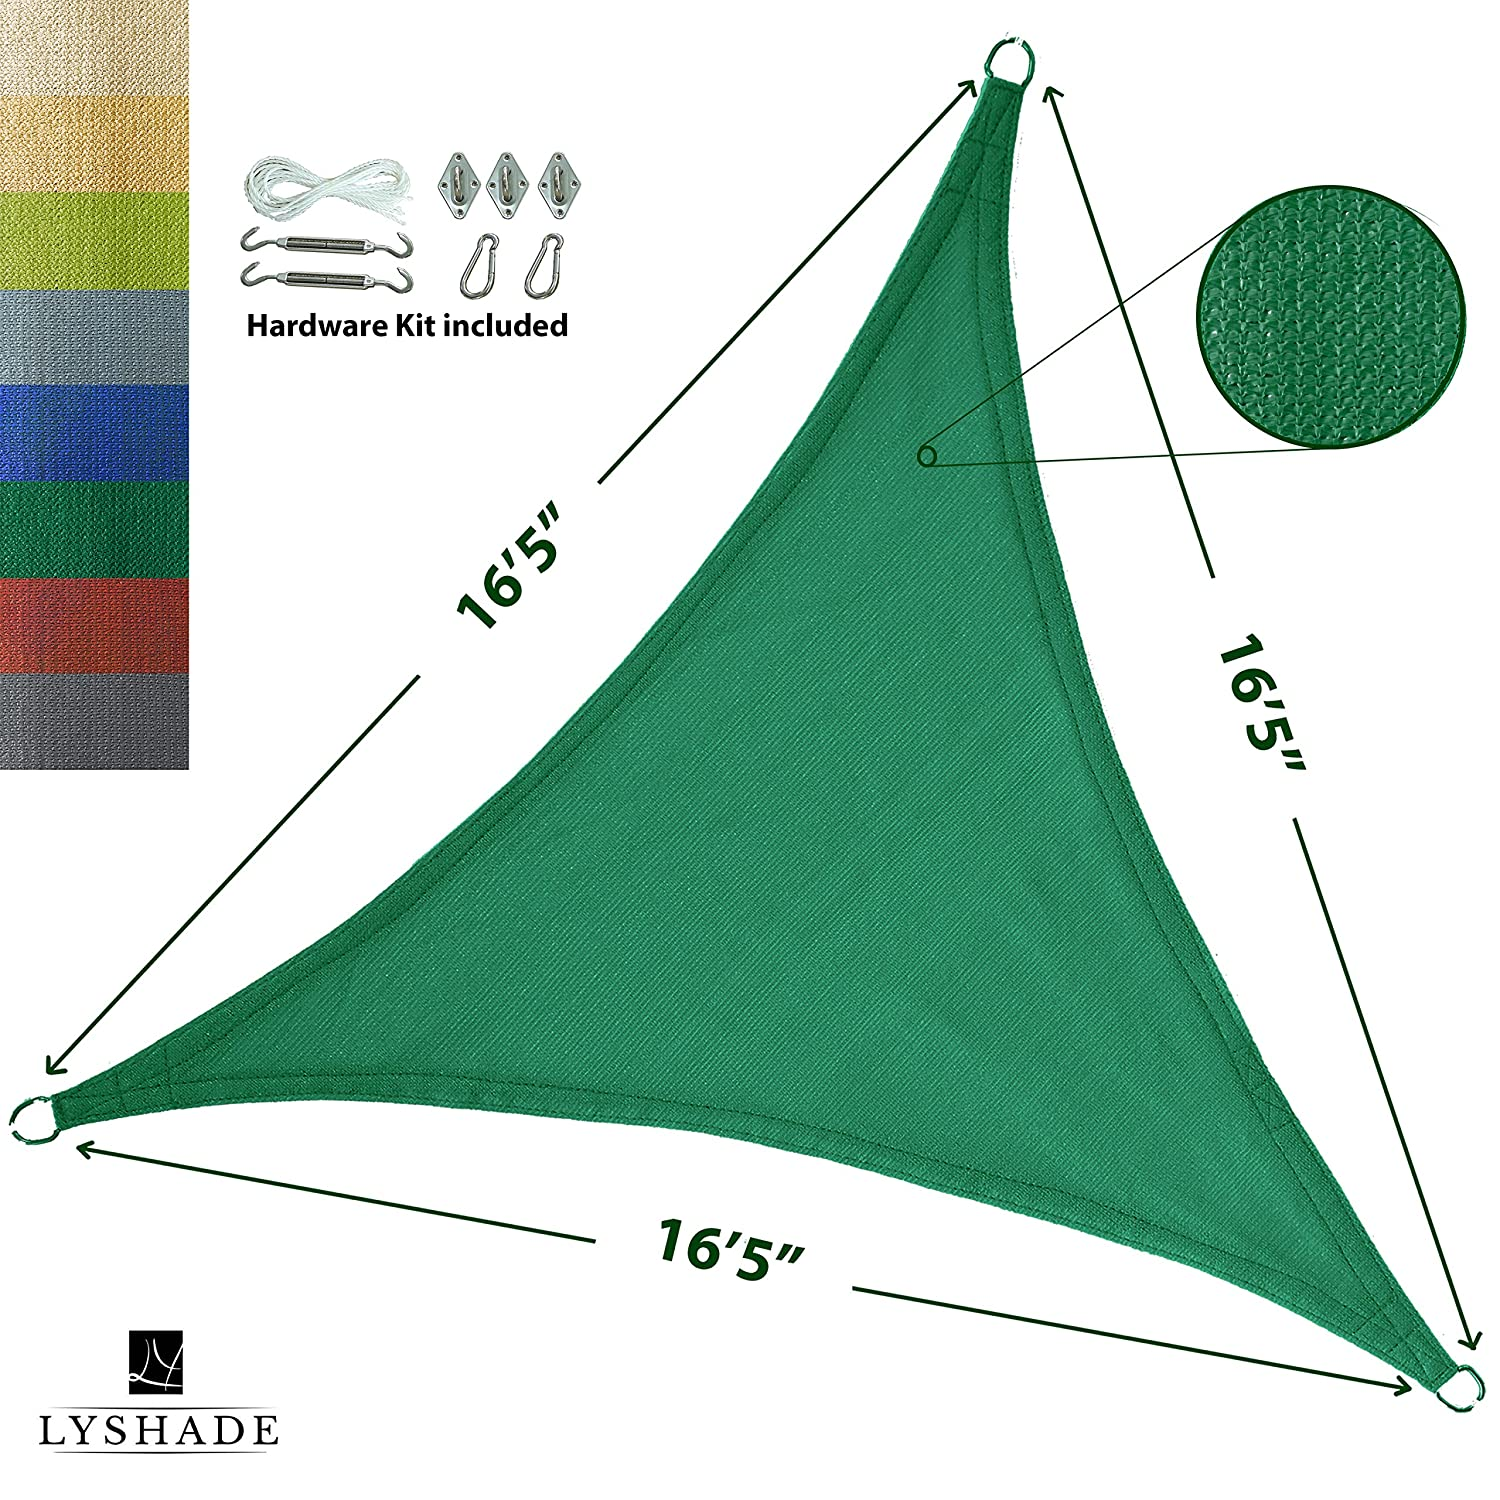 LyShade 16 5 x 16 5 x 16 5 Triangle Sun Shade Sail Canopy with Stainless Steel Hardware Kit Dark Green – UV Block for Patio and Outdoor